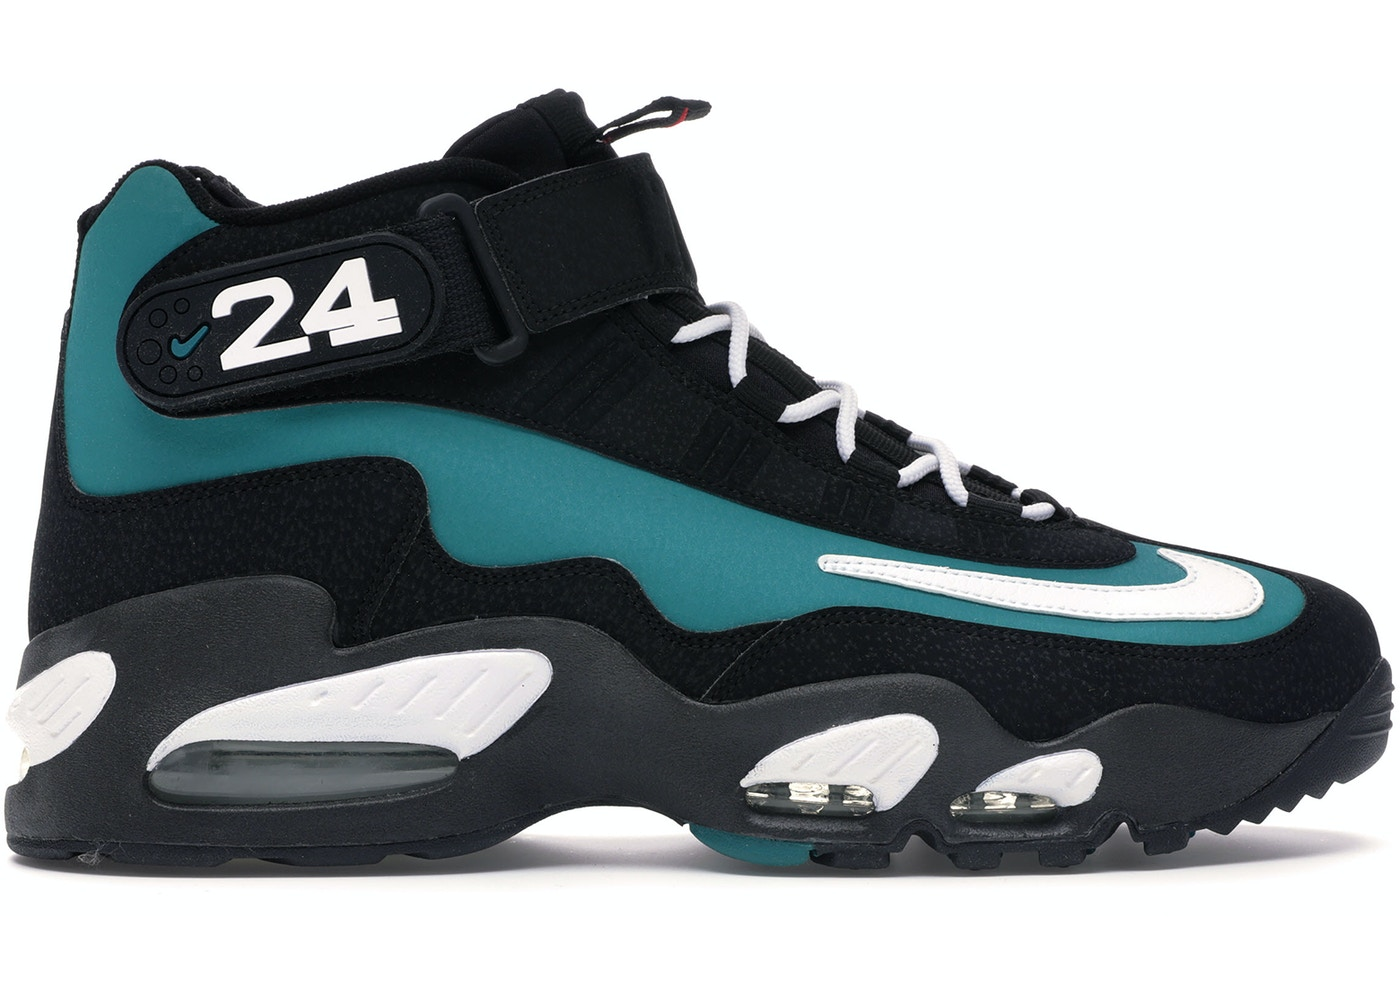 official photos 568e3 9bbb2 Nike Air Griffey Max 1 Freshwater